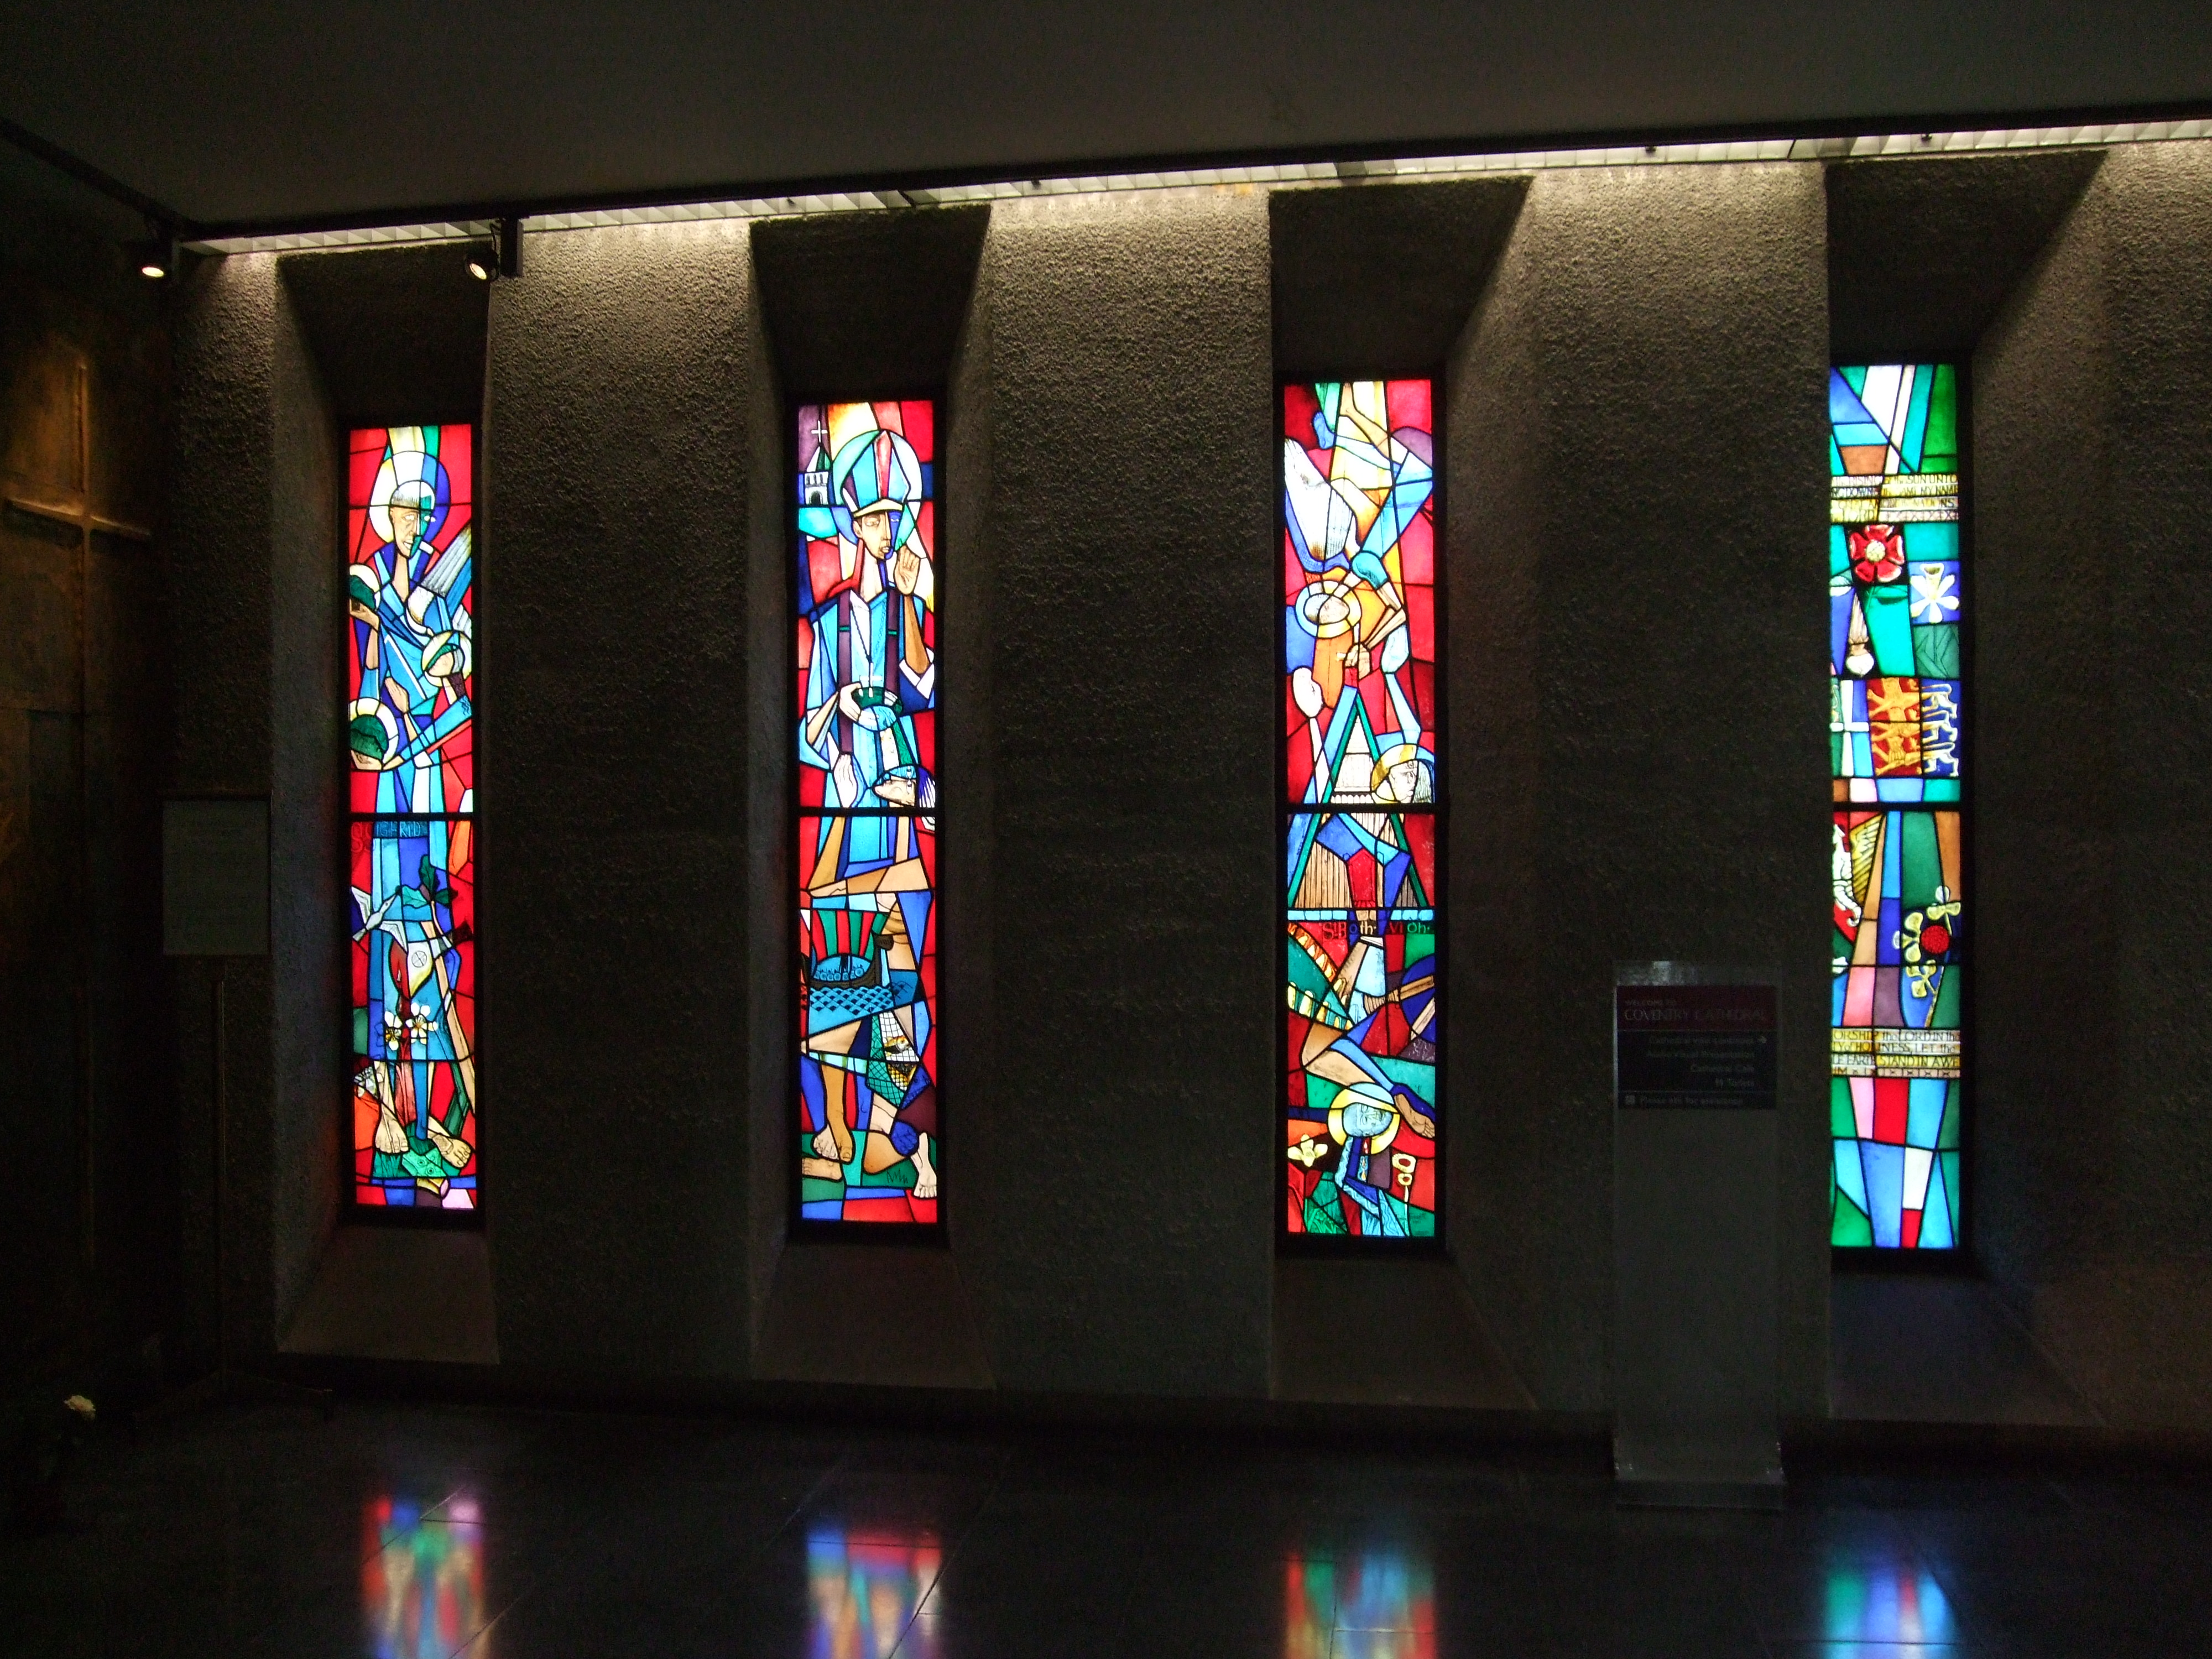 stained glass windows essay View stained glass windows research papers on academiaedu for free.